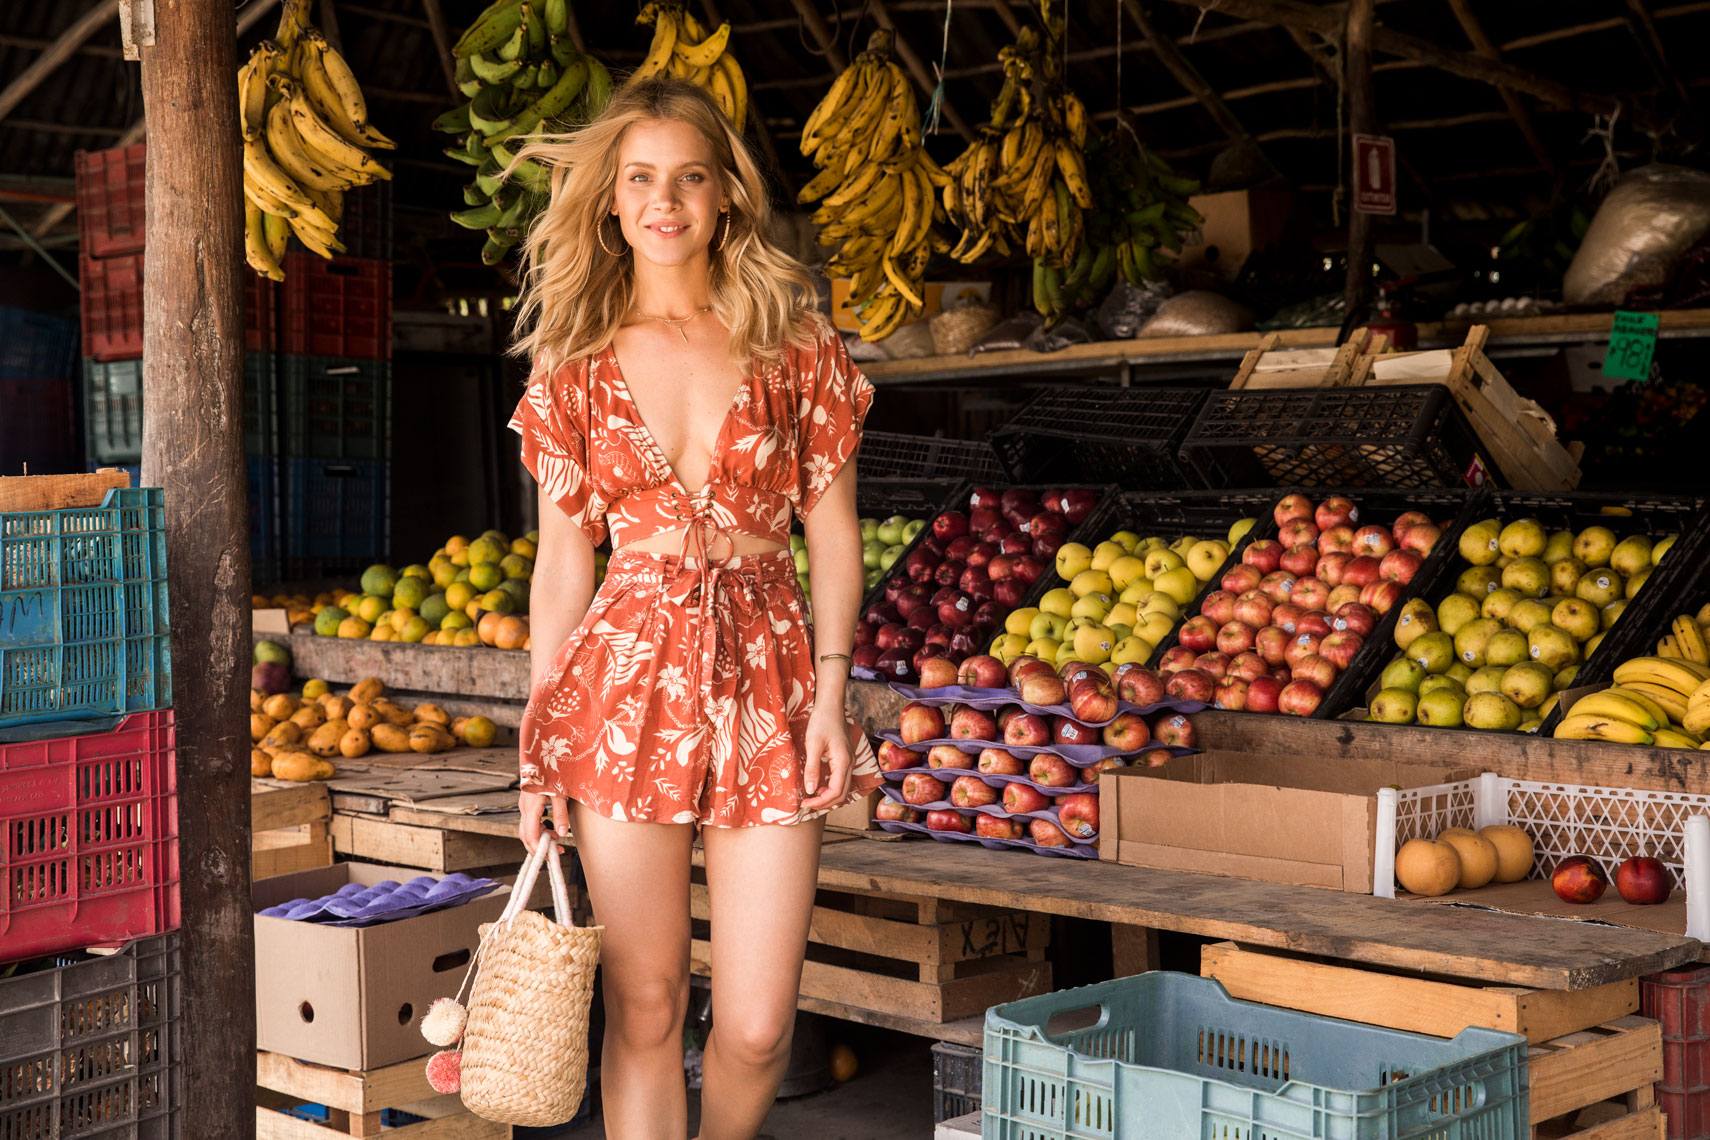 Blonde girl at fruit market in Mexico